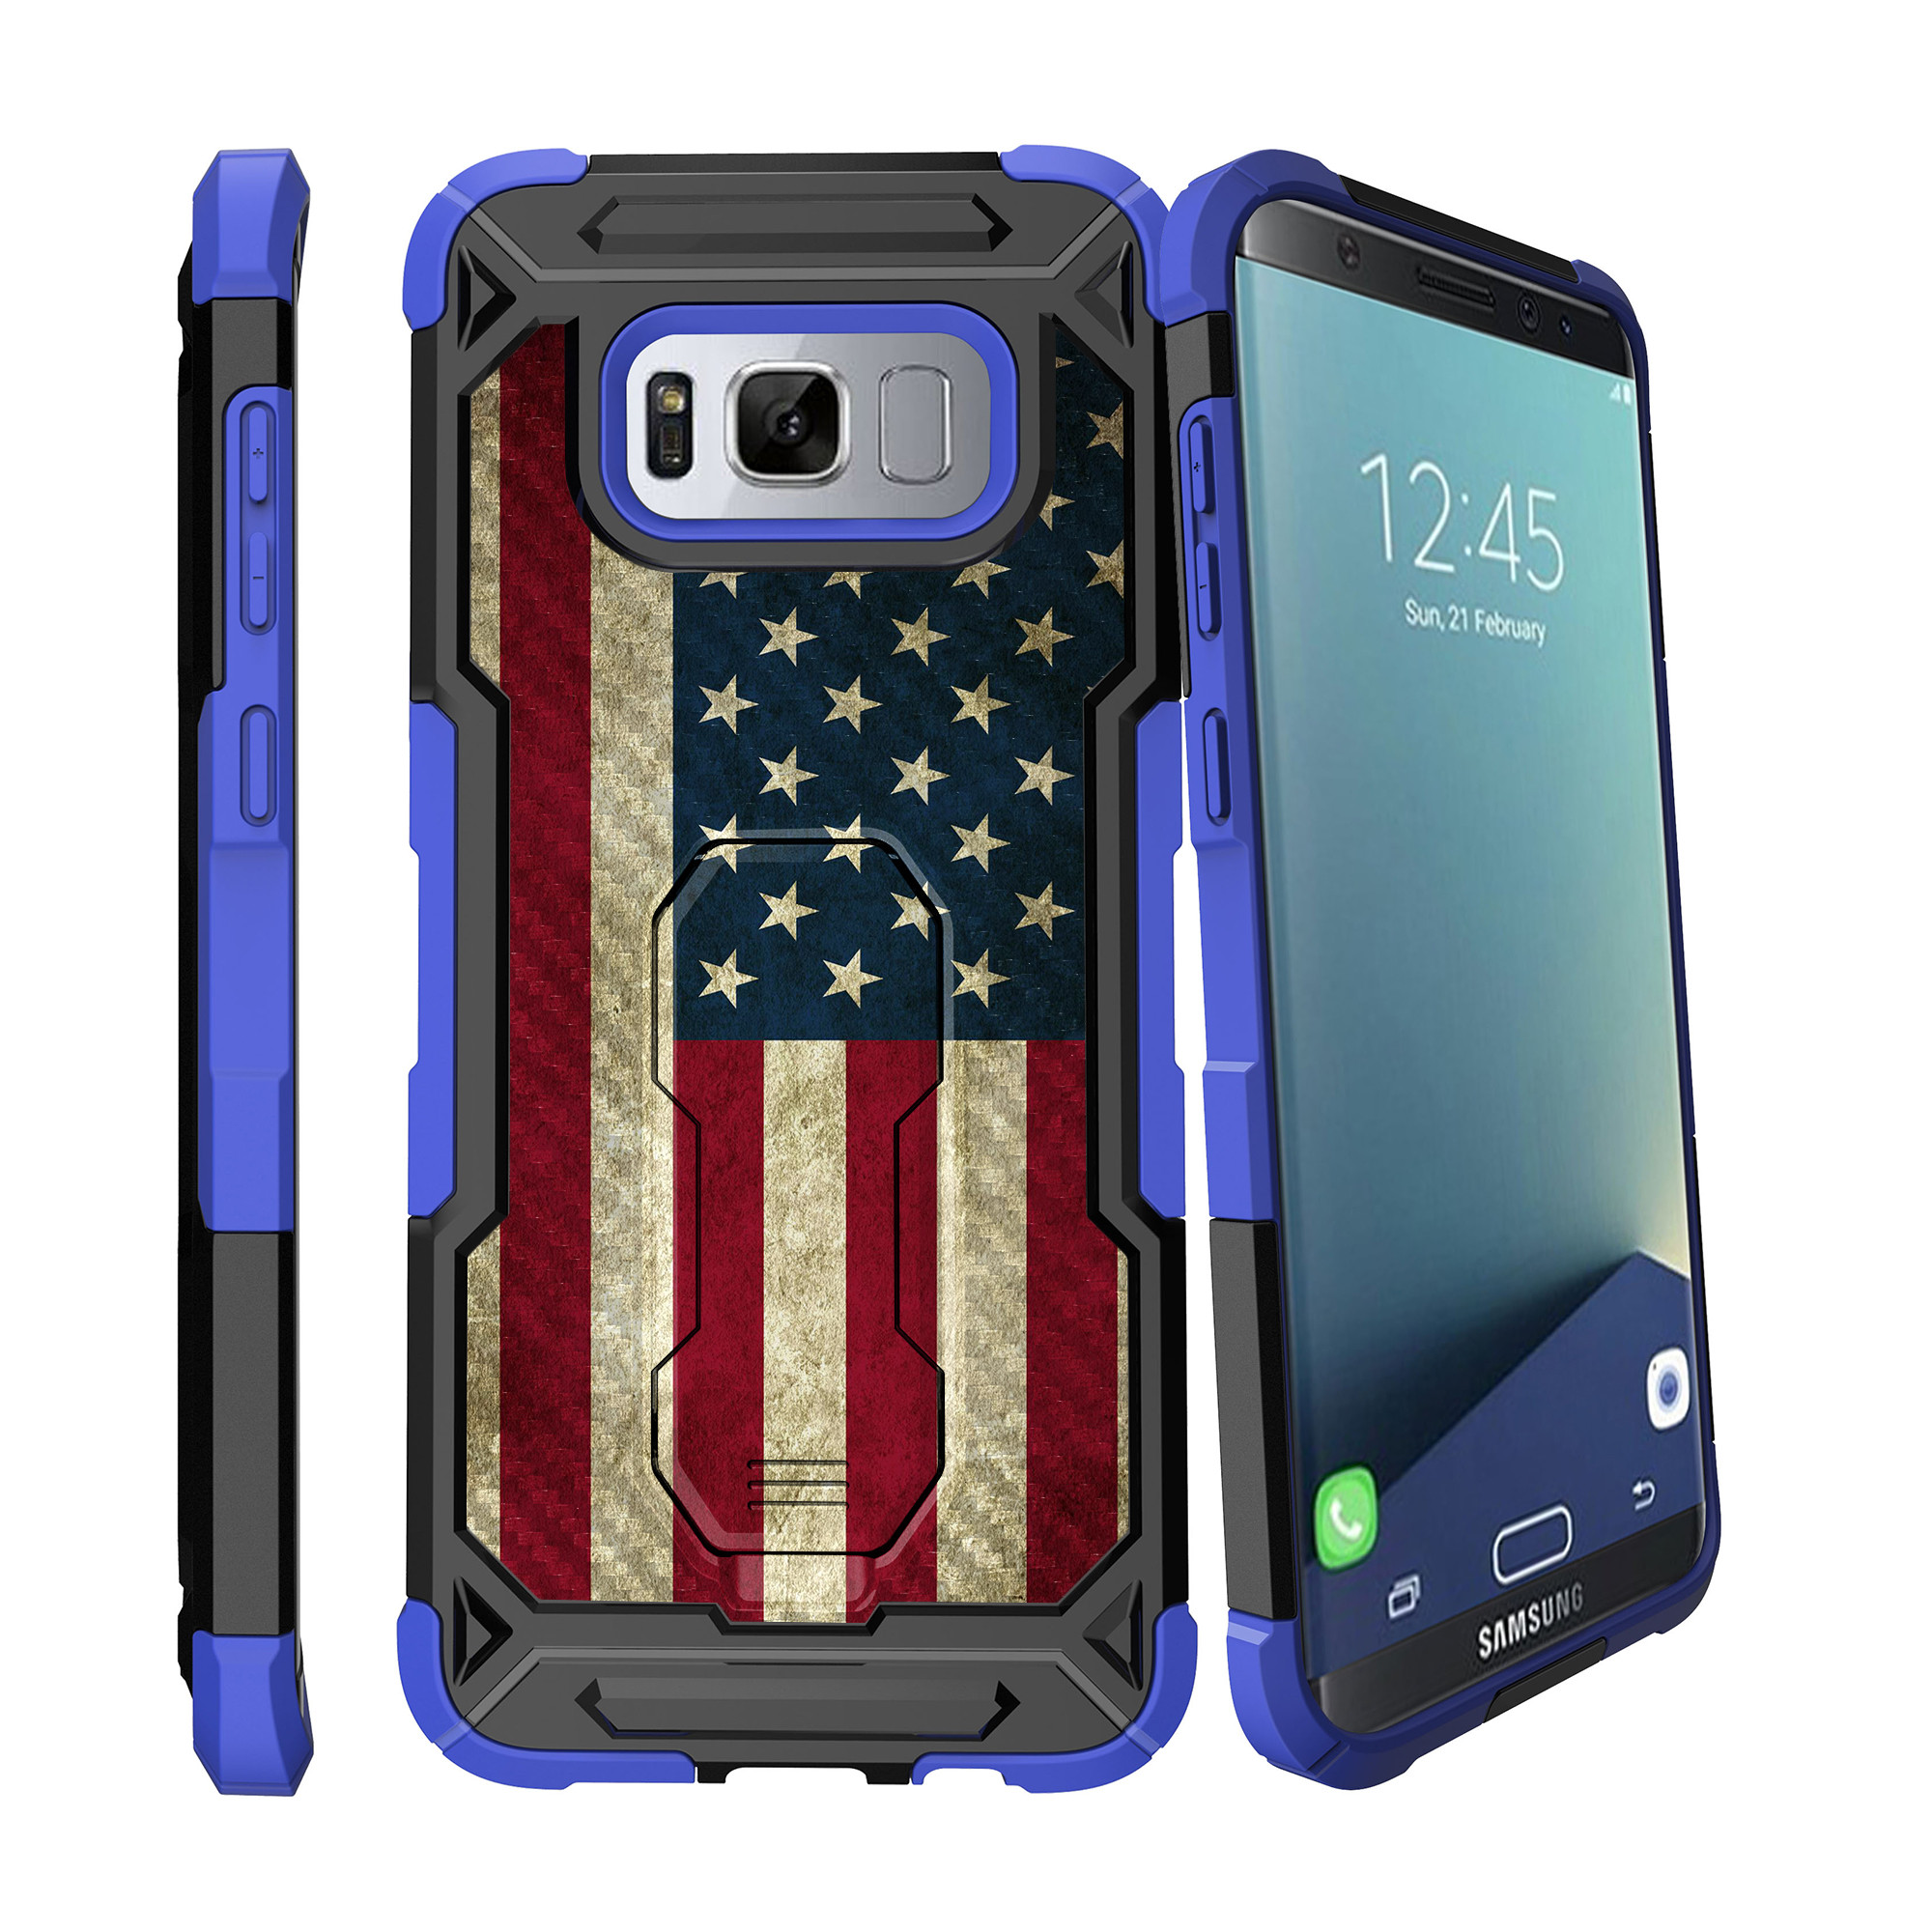 Case for Samsung Galaxy S8 Plus Version [ UFO Defense Case ][Galaxy S8 PLUS SM-G955][Blue Silicone] Carbon Fiber Texture Case with Holster + Stand Unique Collection